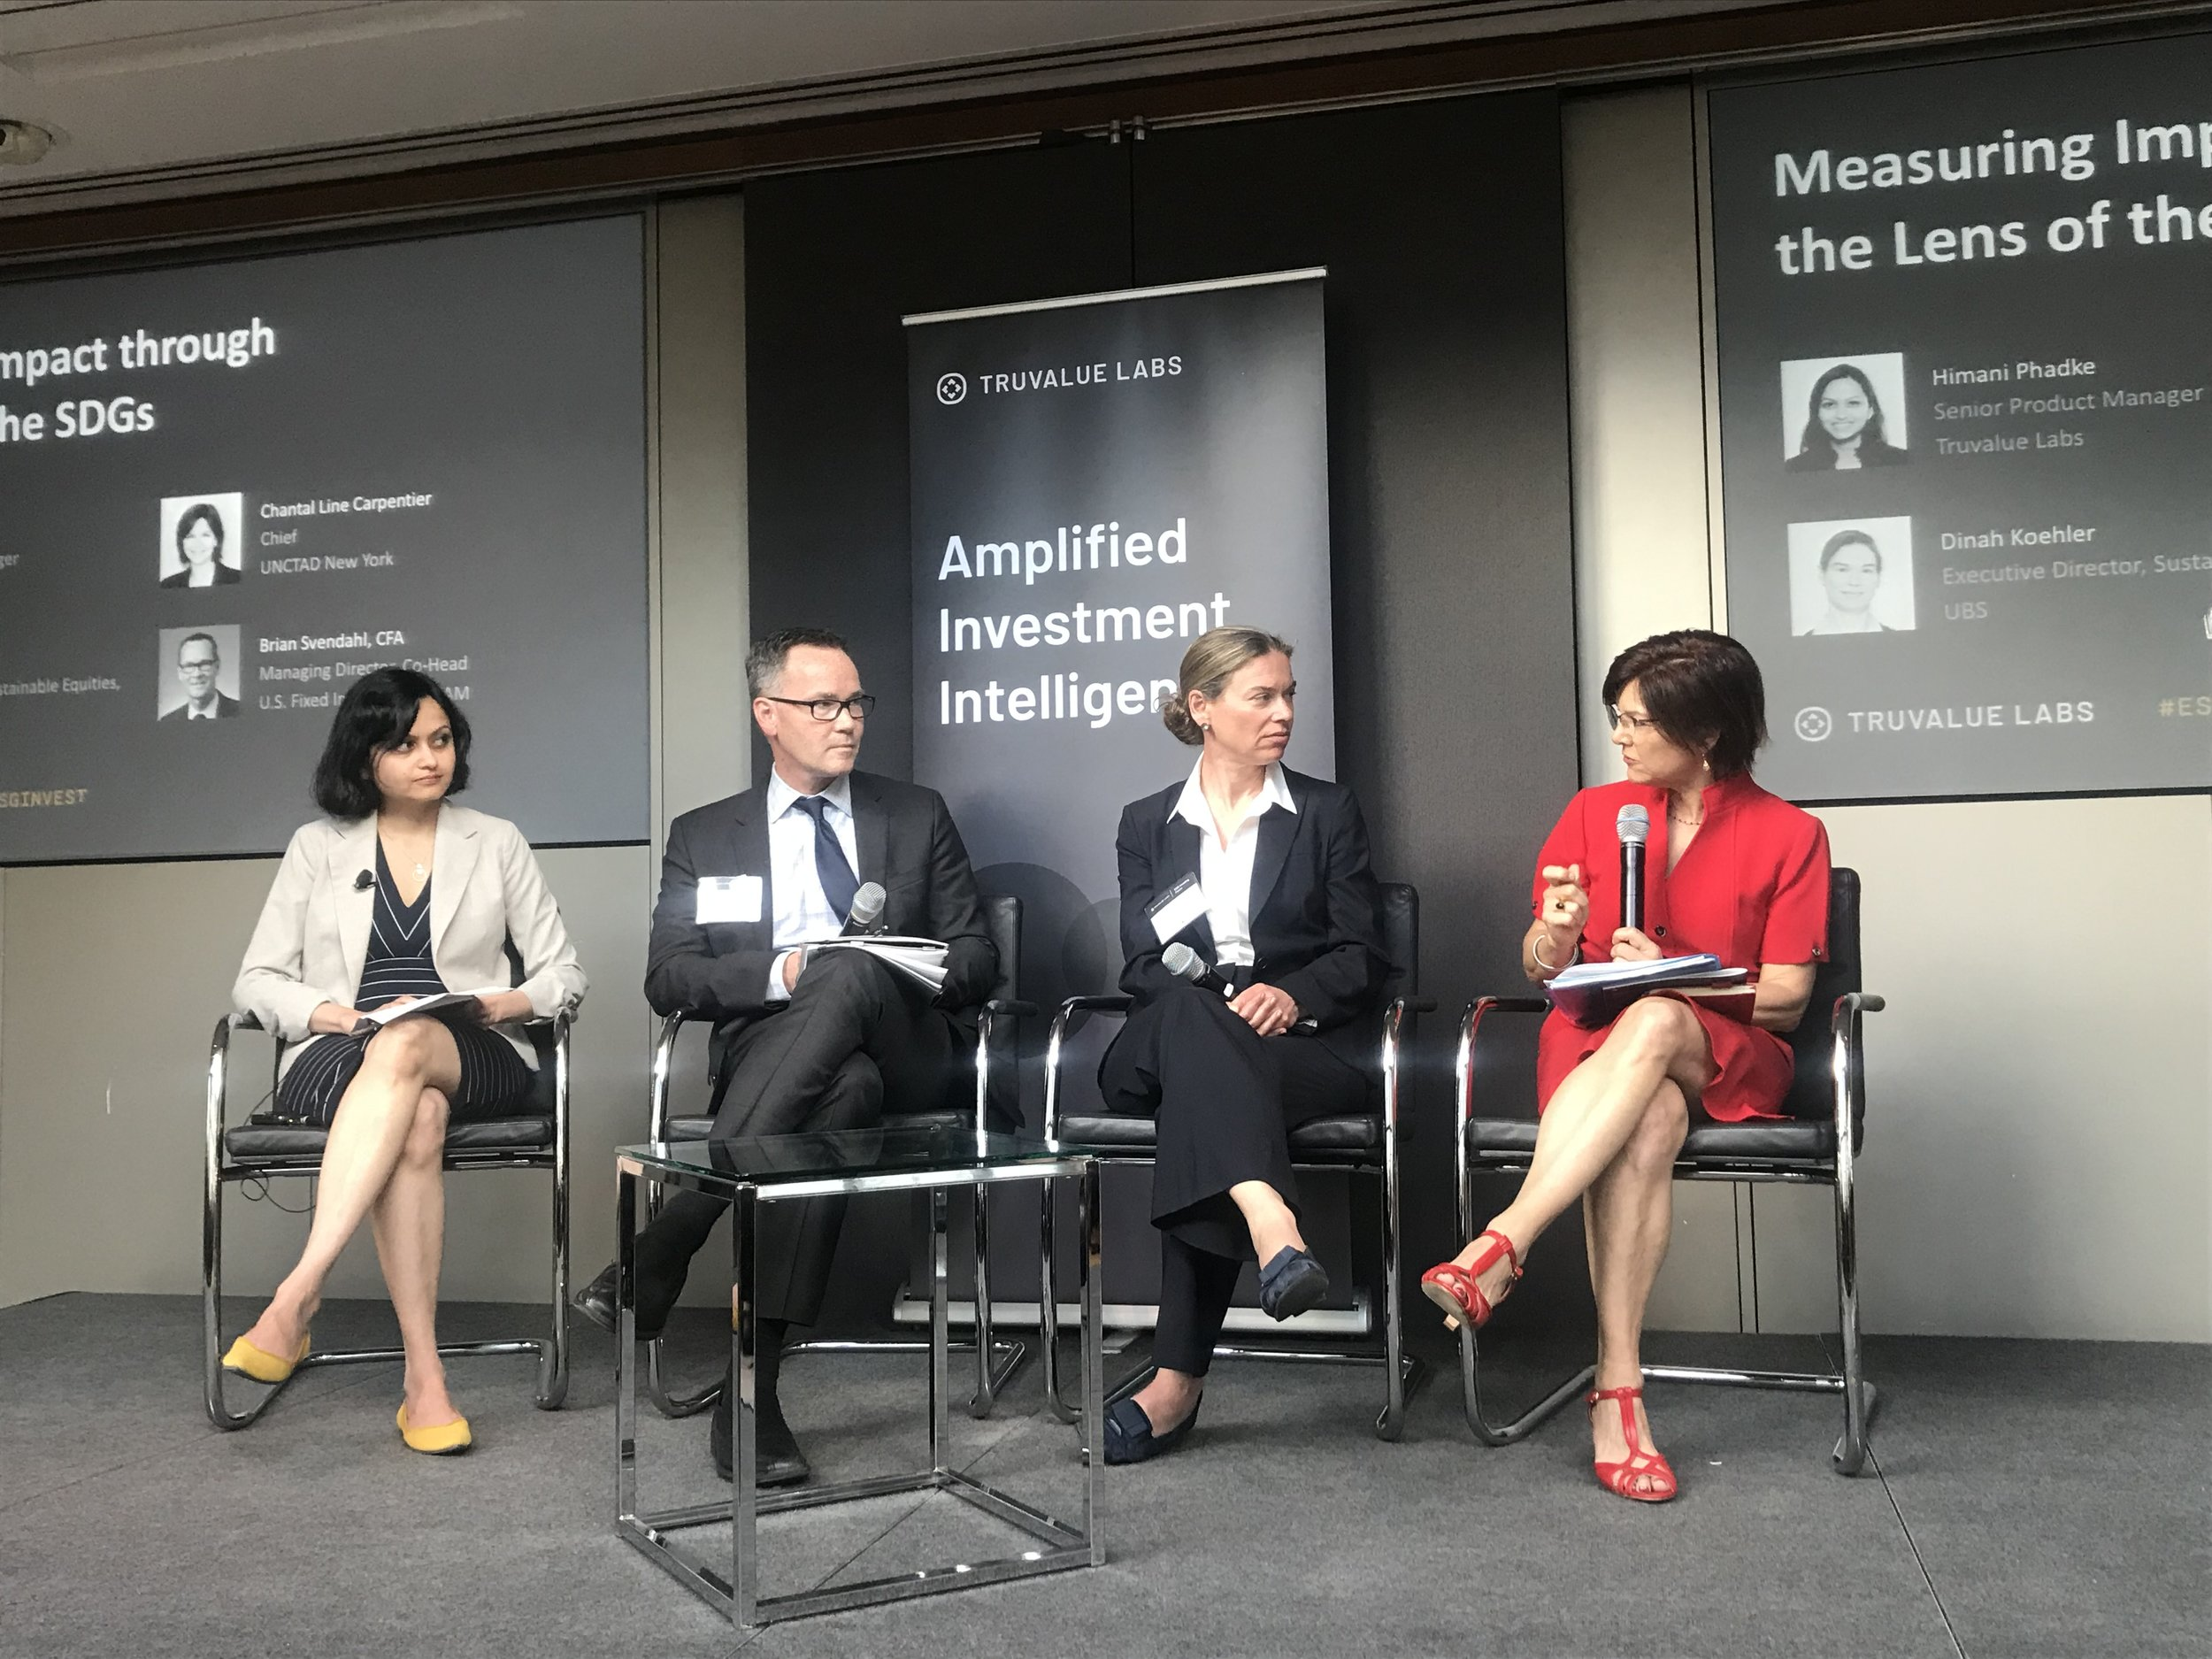 Himani Phadke, Truvalue Labs Brian Svendahl, RBC Global Asset Management Dinah Koehler, UBS Chantal Line Carpentier, United Nations Conference on Trade and Development New York